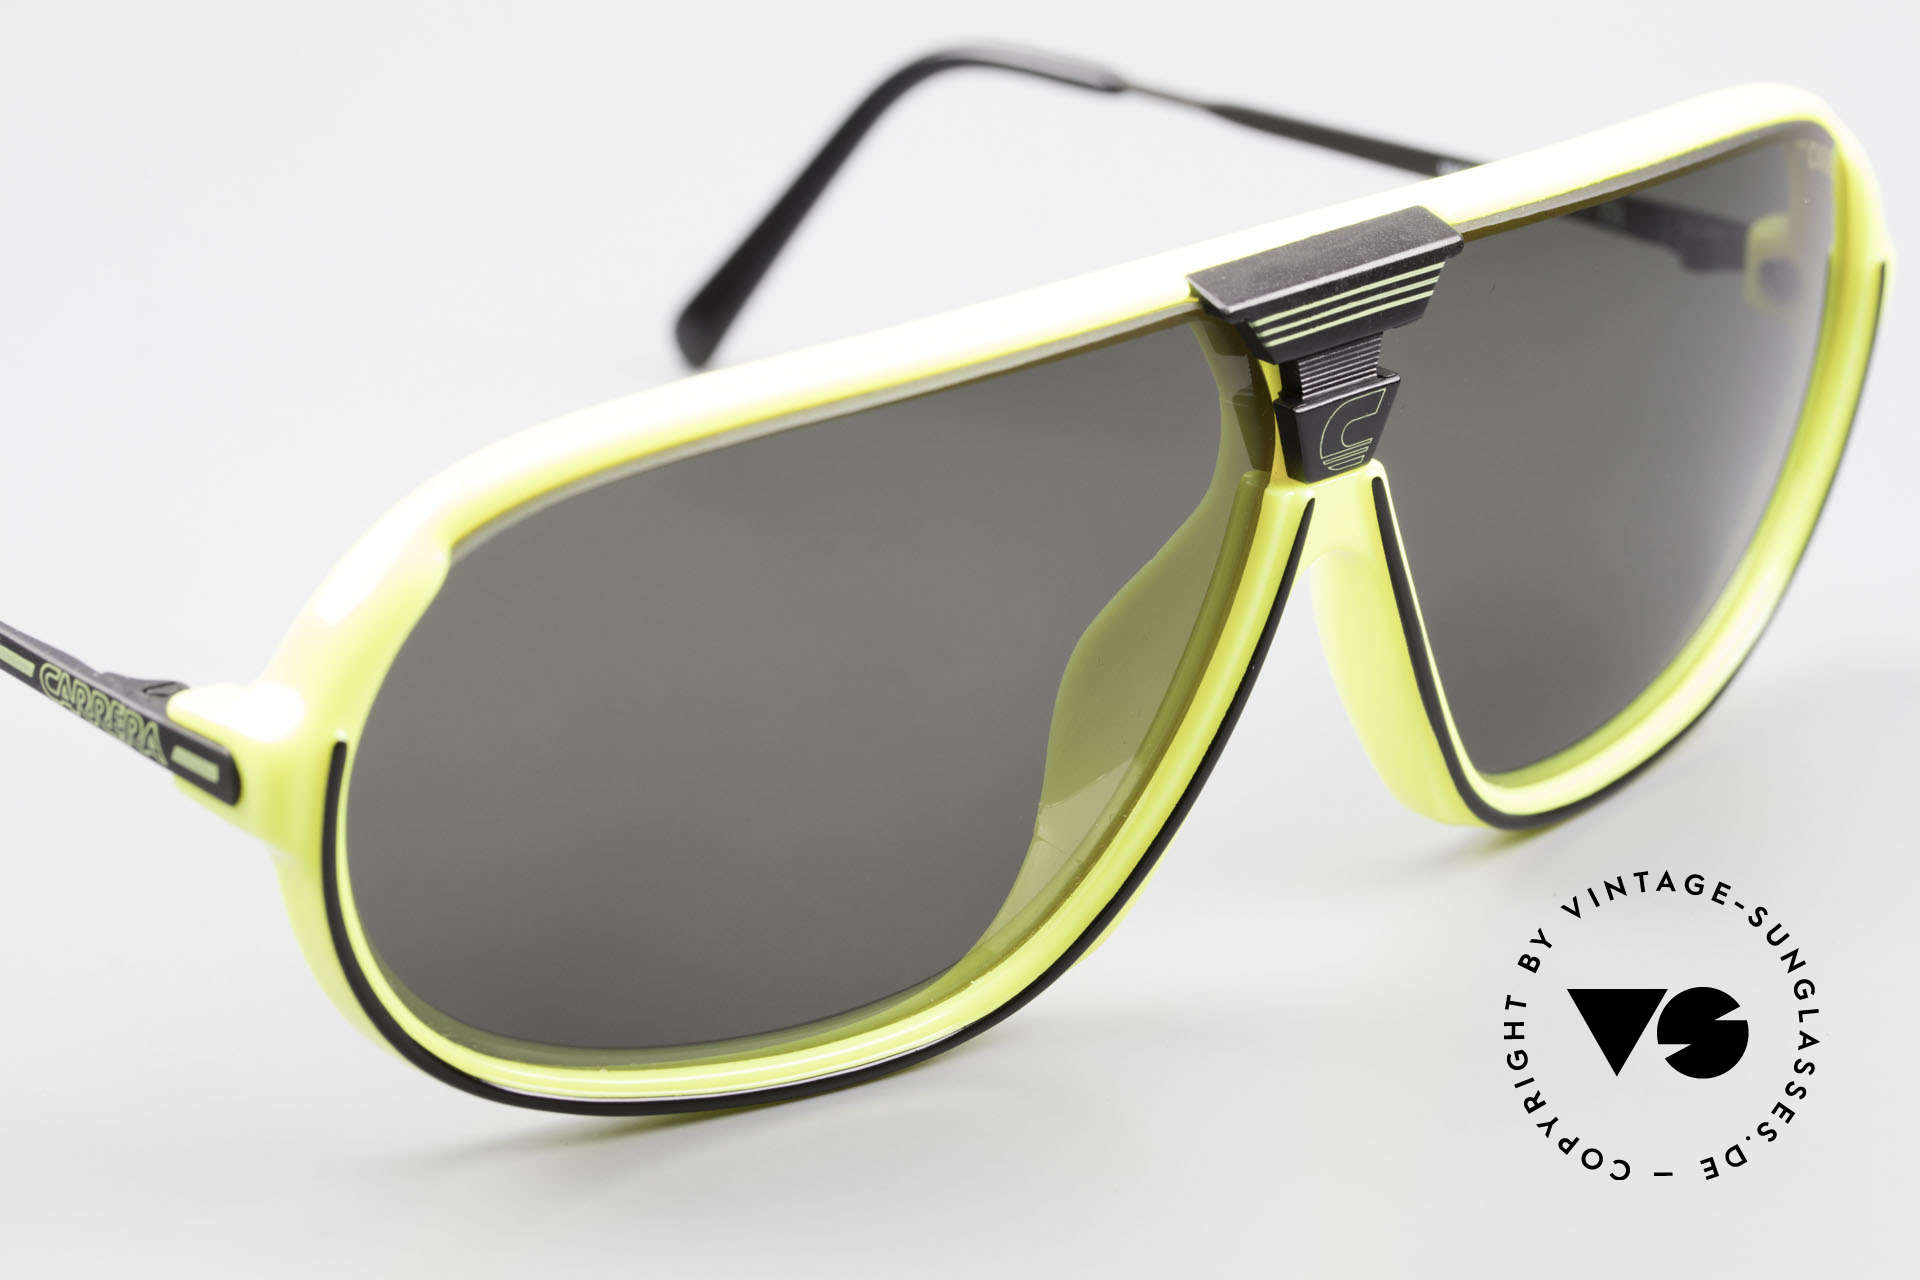 Carrera 5416 80's Shades Polarized Lenses, new old stock (like all our 80's Carrera sunnies), Made for Men